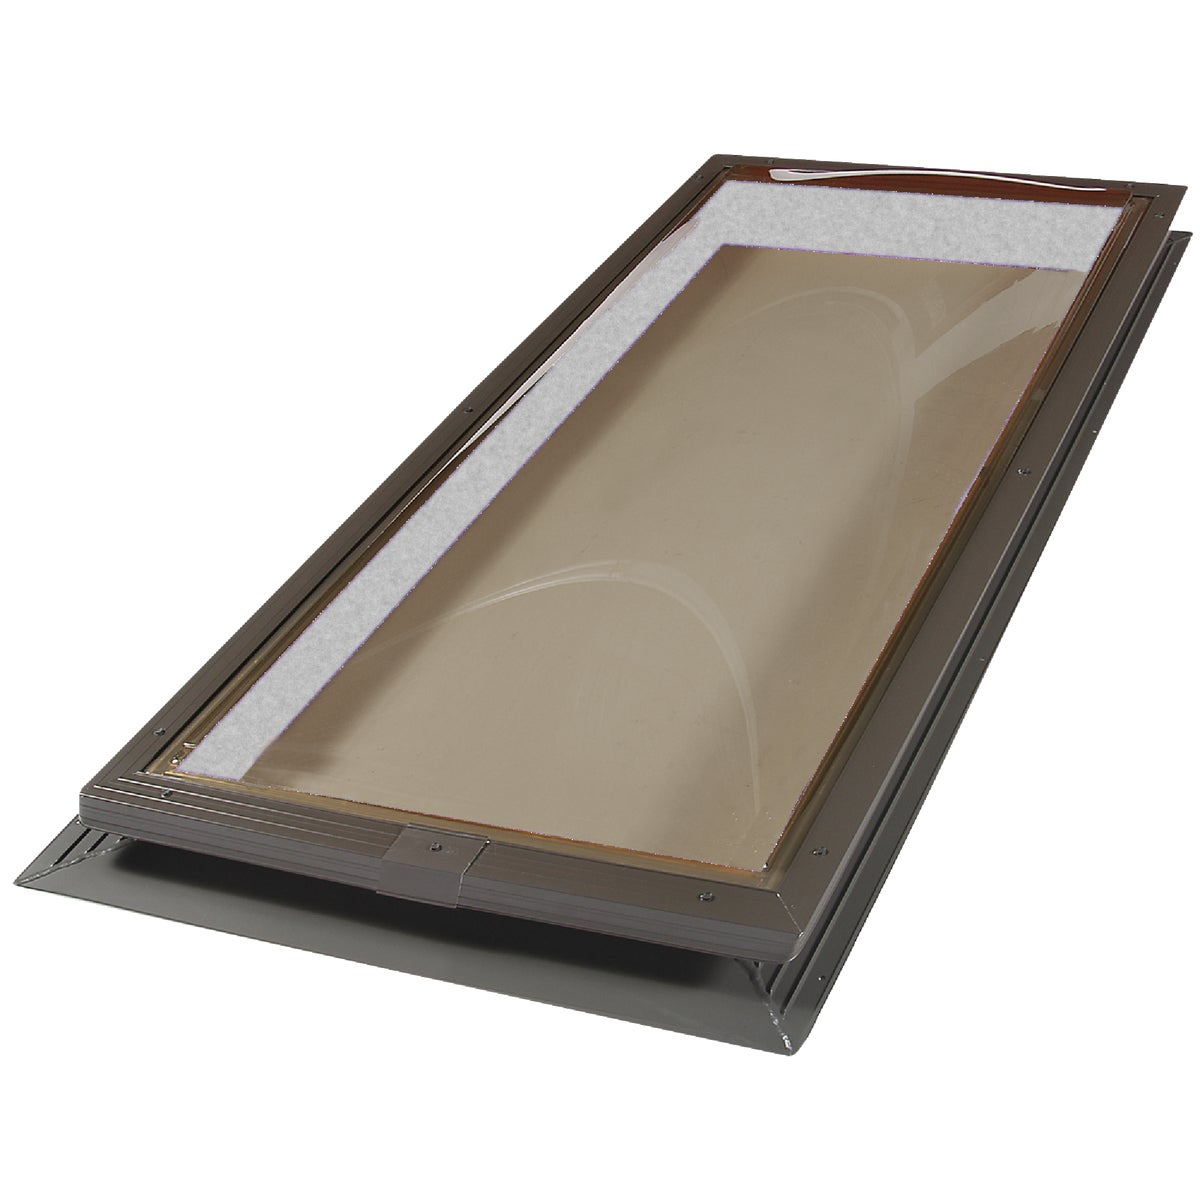 2X4 BRZ 2-DOME SKYLIGHT